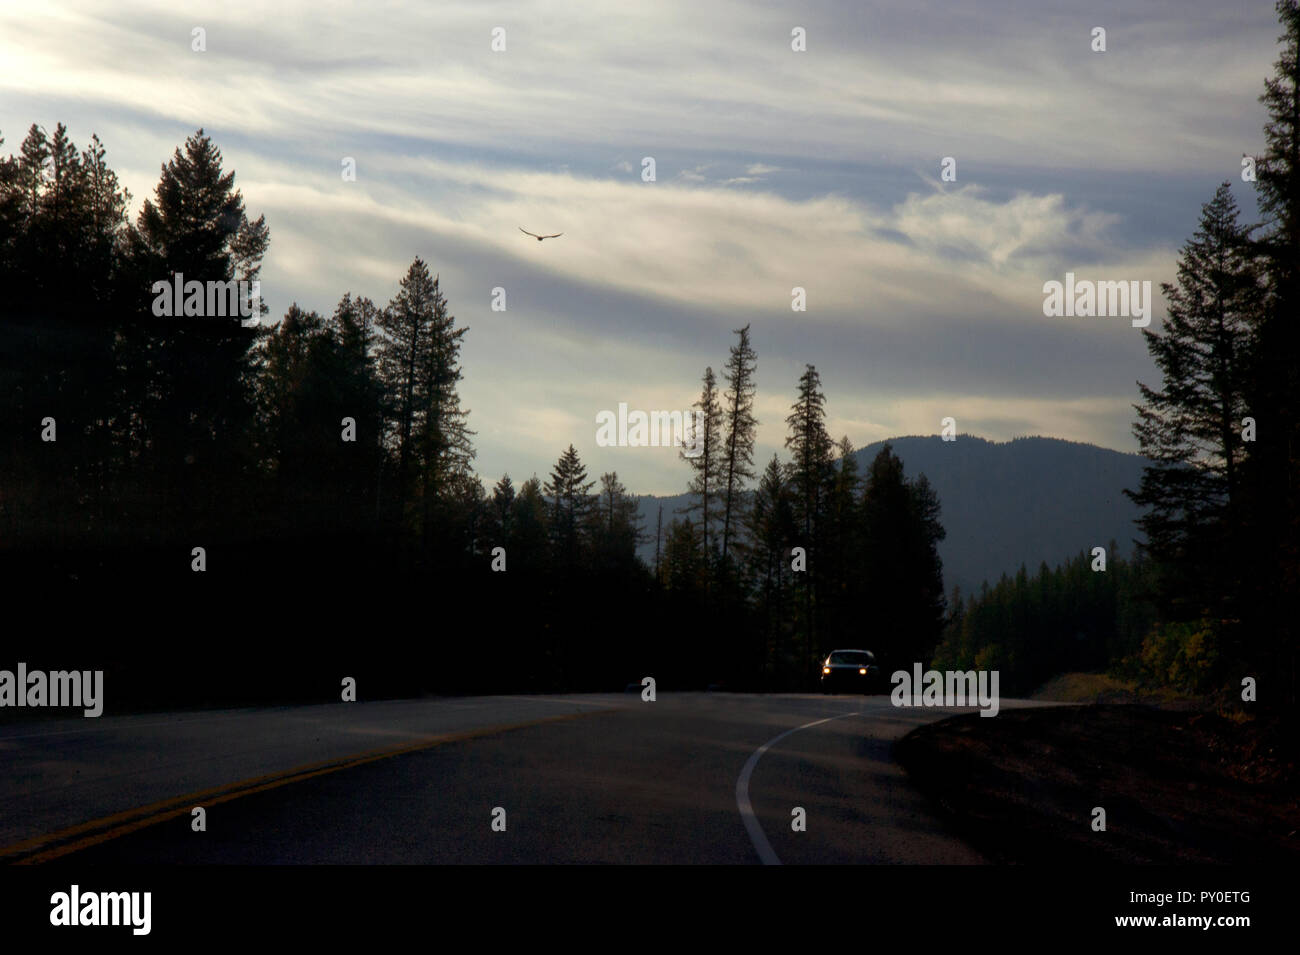 Car driving on open highway with large bird soaring overhead in Montana, USA - Stock Image